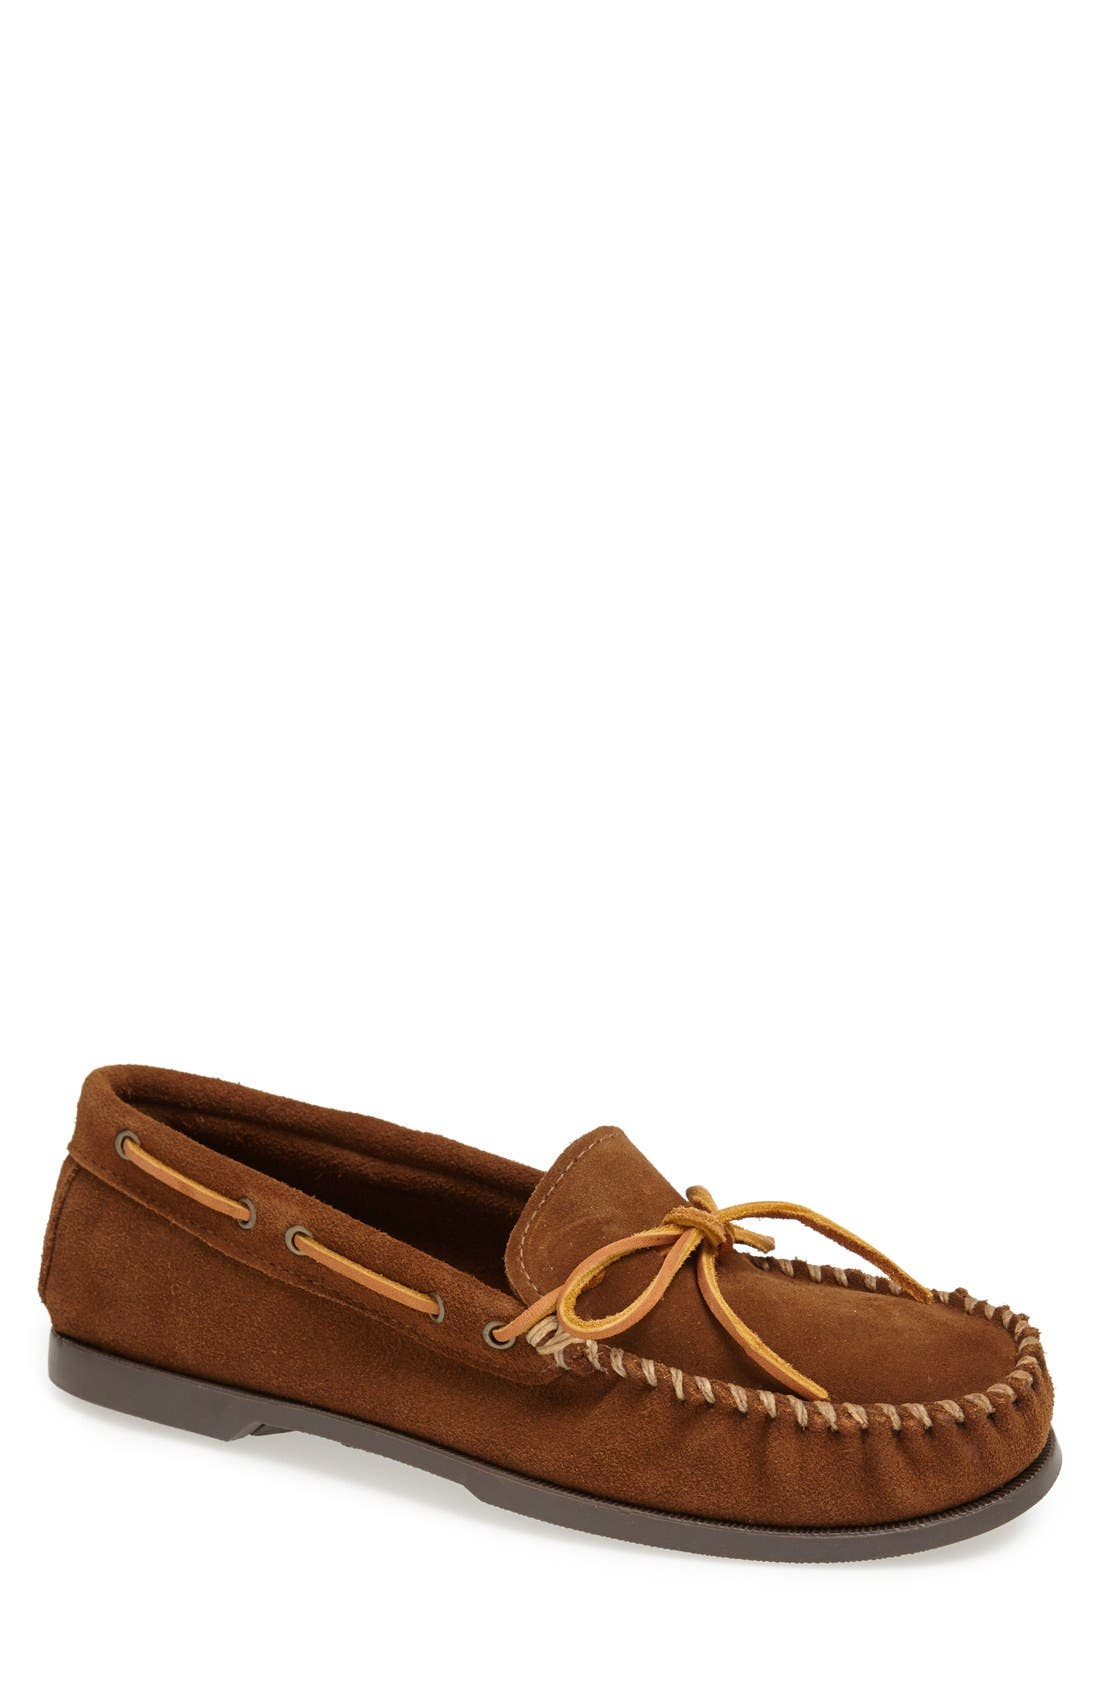 Main Image - Minnetonka Suede Camp Moccasin